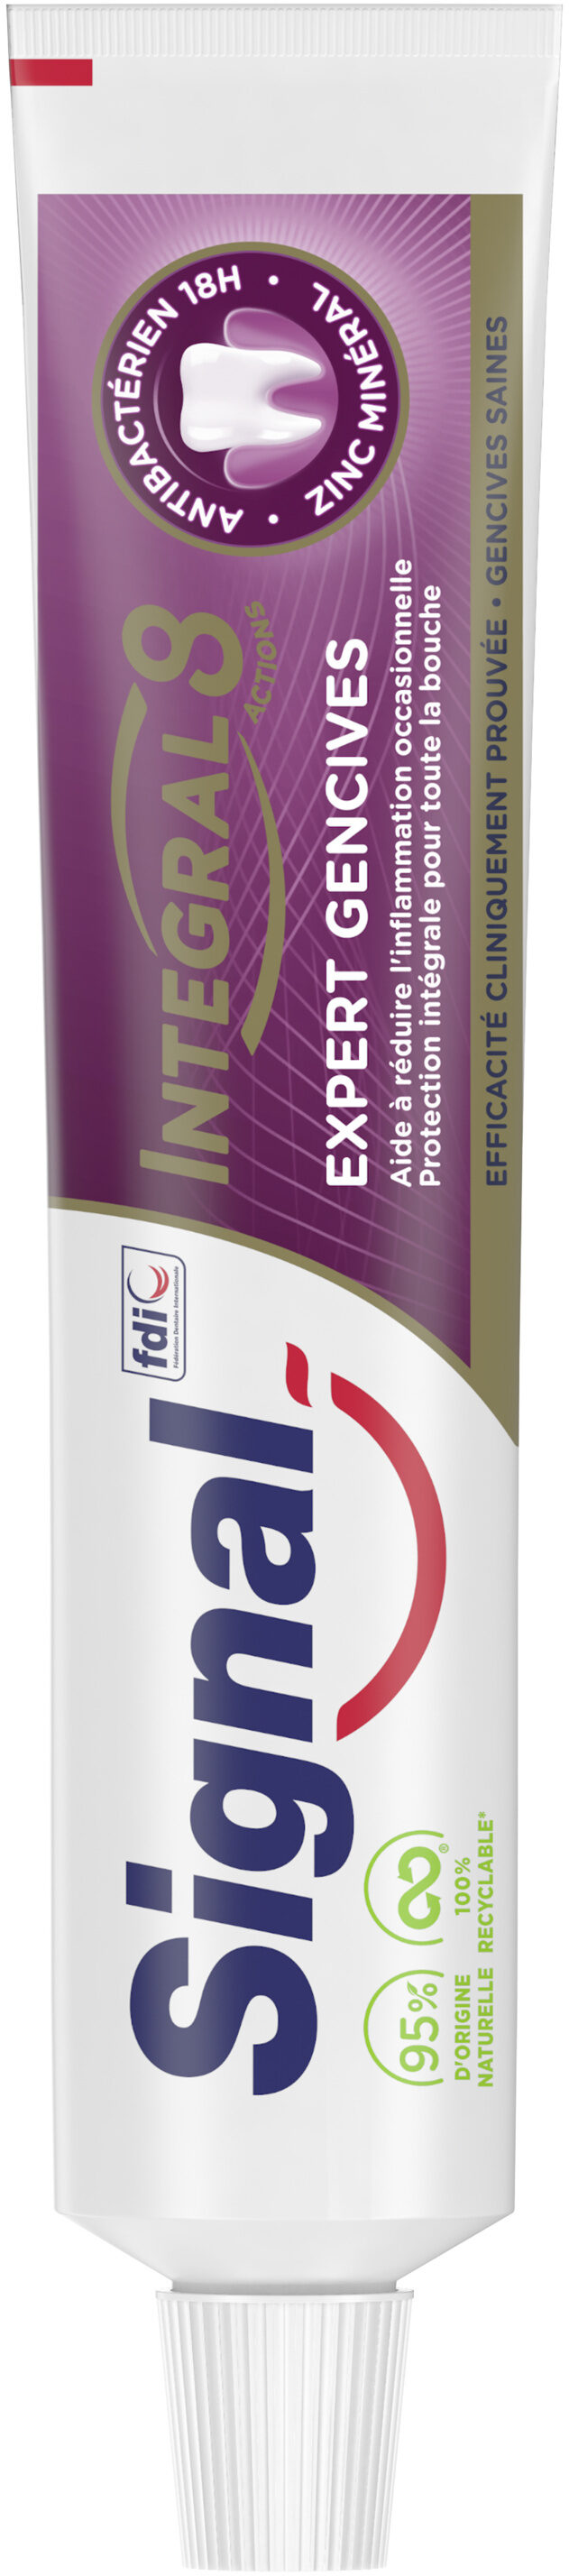 Signal Dentifrice Integral 8 Expert Gencives - Product - fr